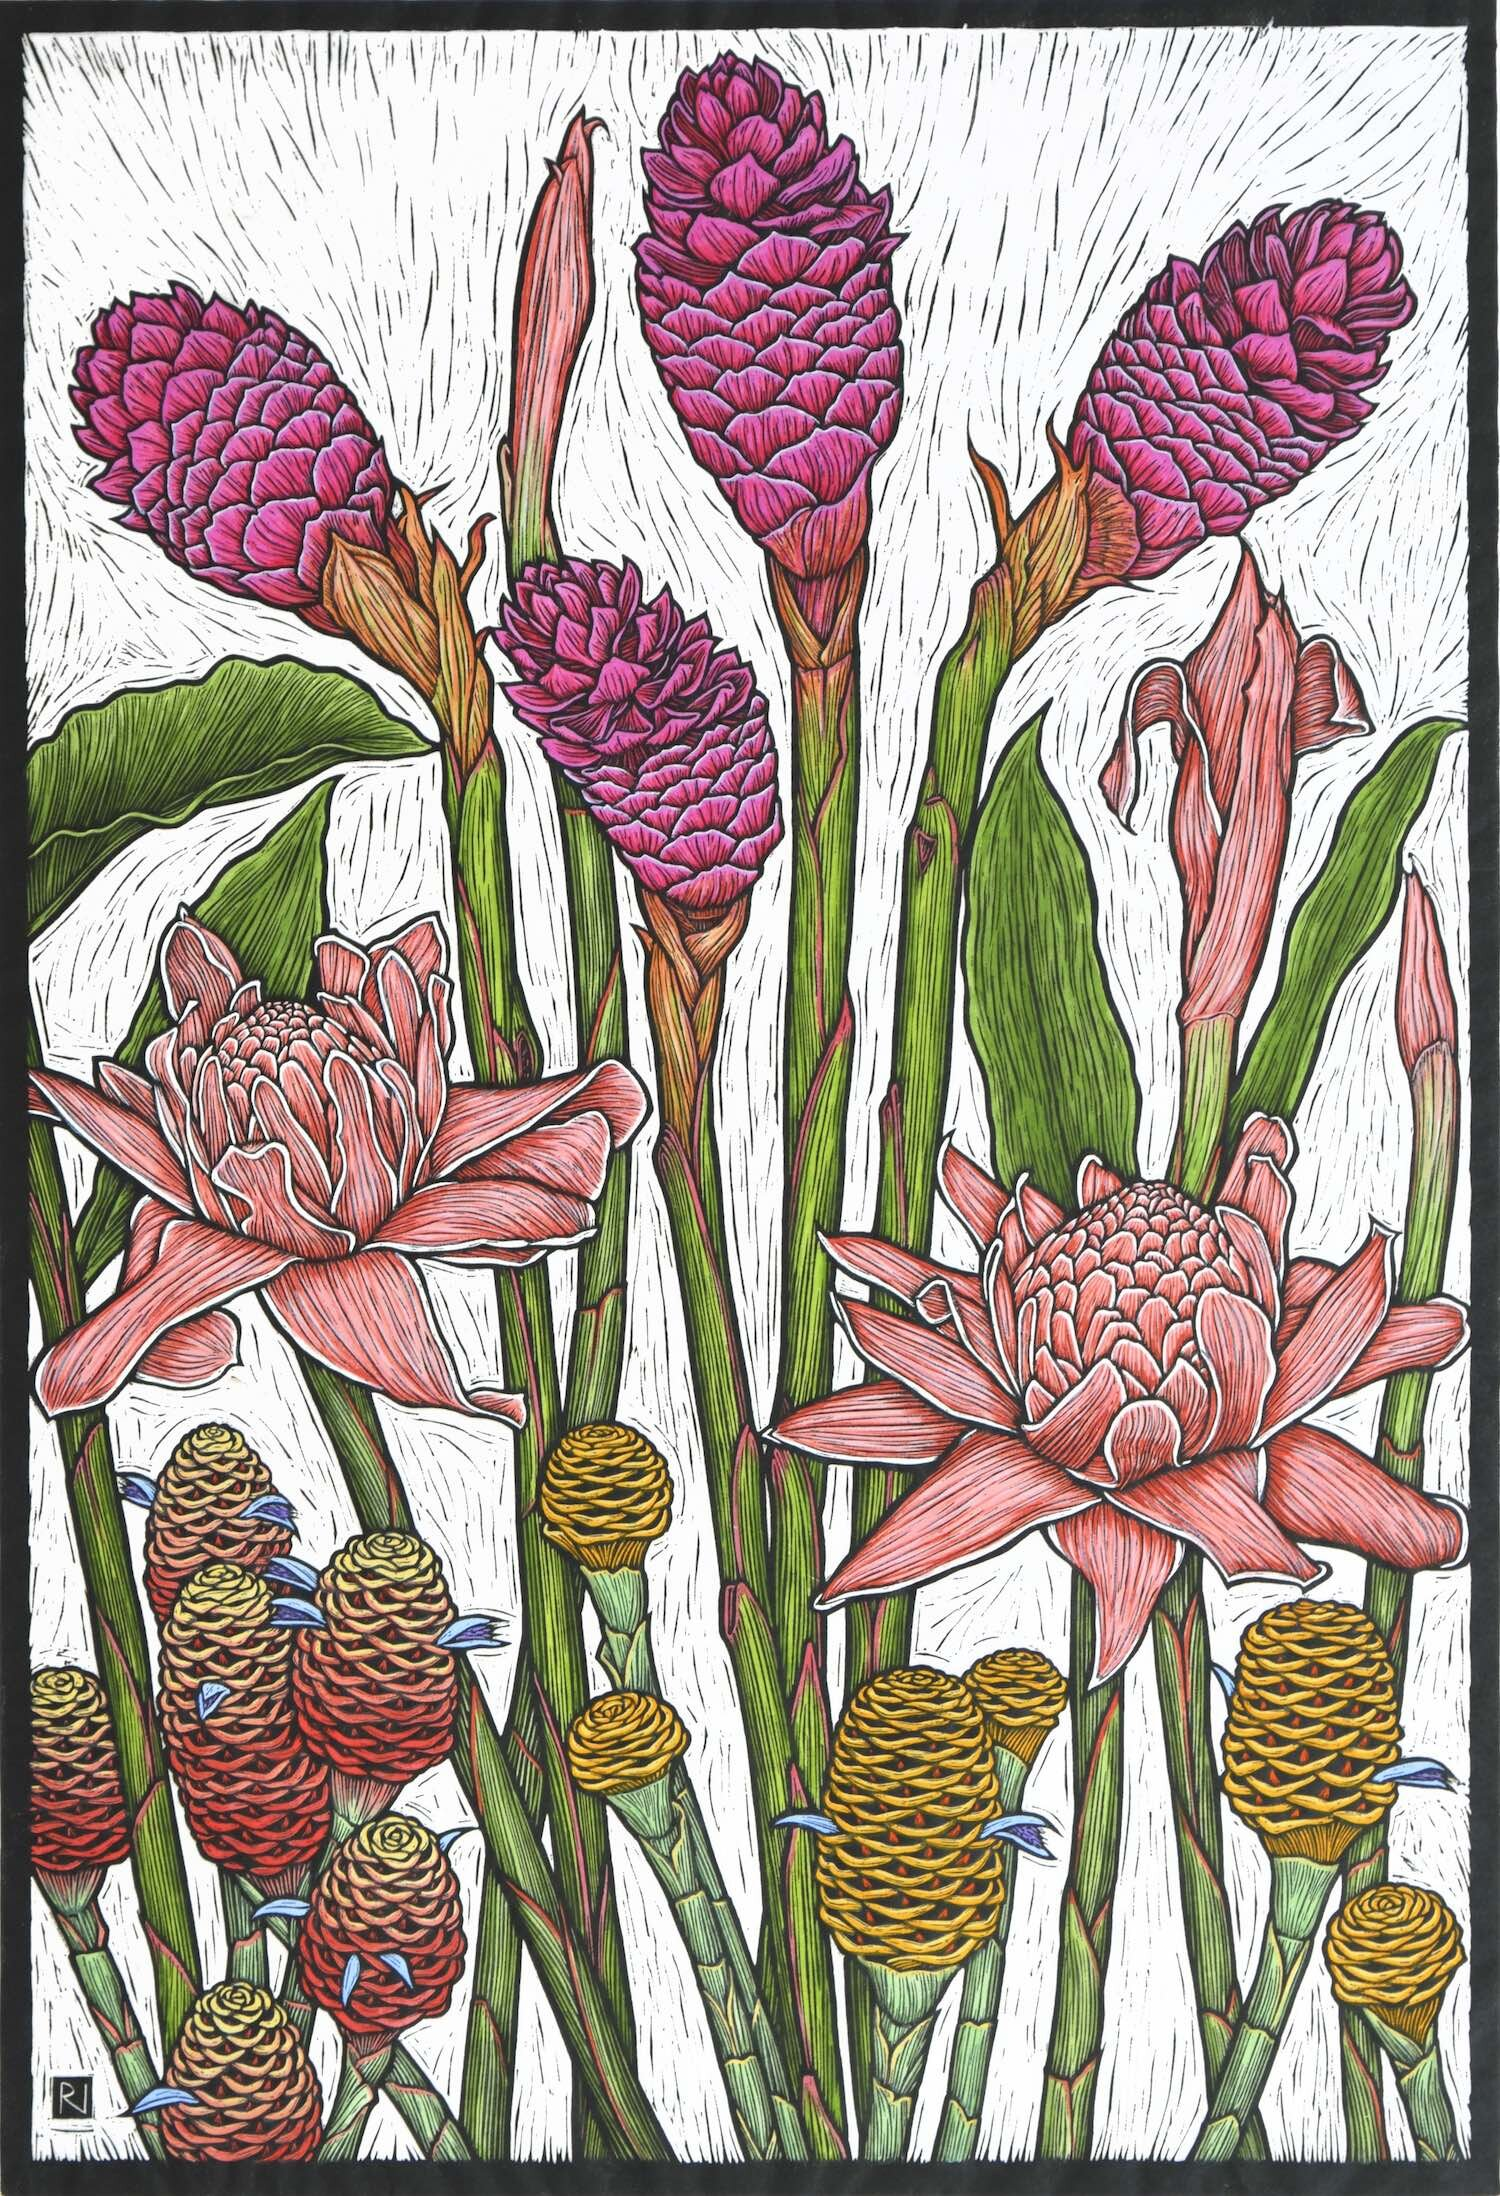 tropical Gingers  79 x 54 cm,  Edition of 50  Hand-coloured linocut on handmade Japanese paper  $1,700